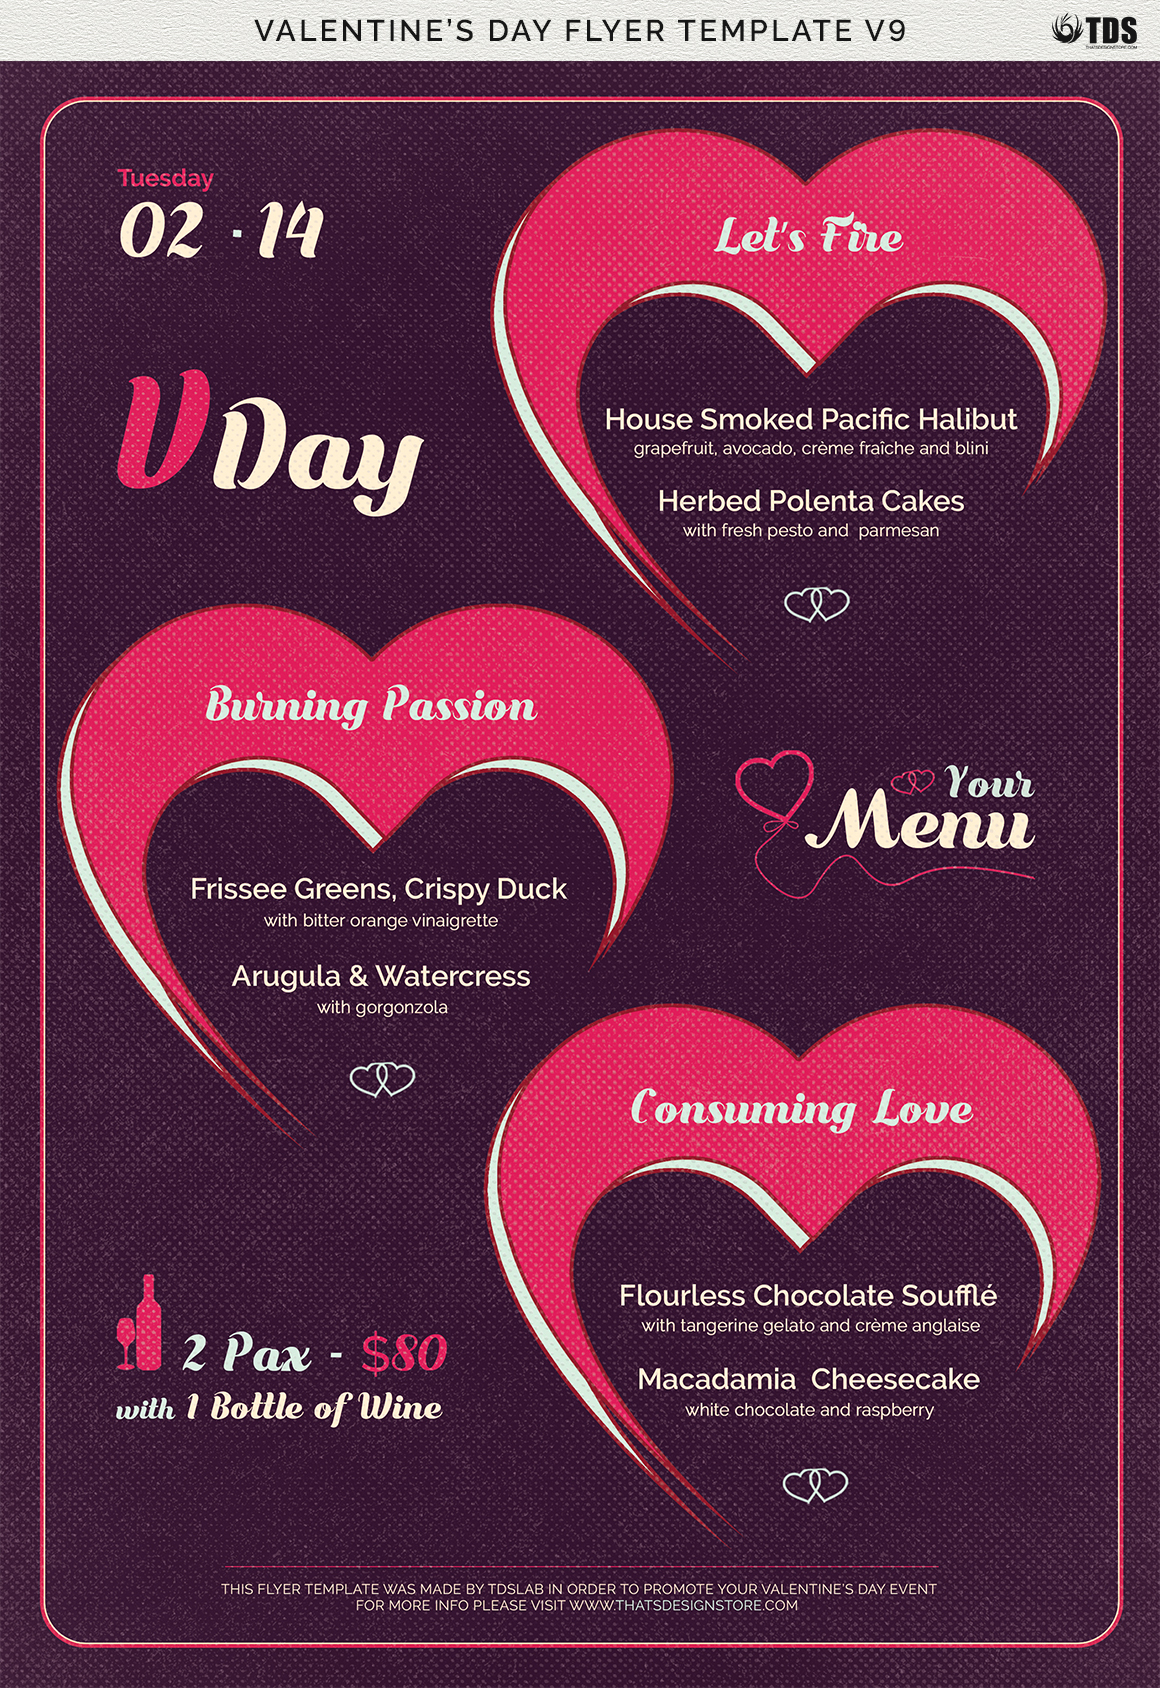 Valentines Day Menu Template V9